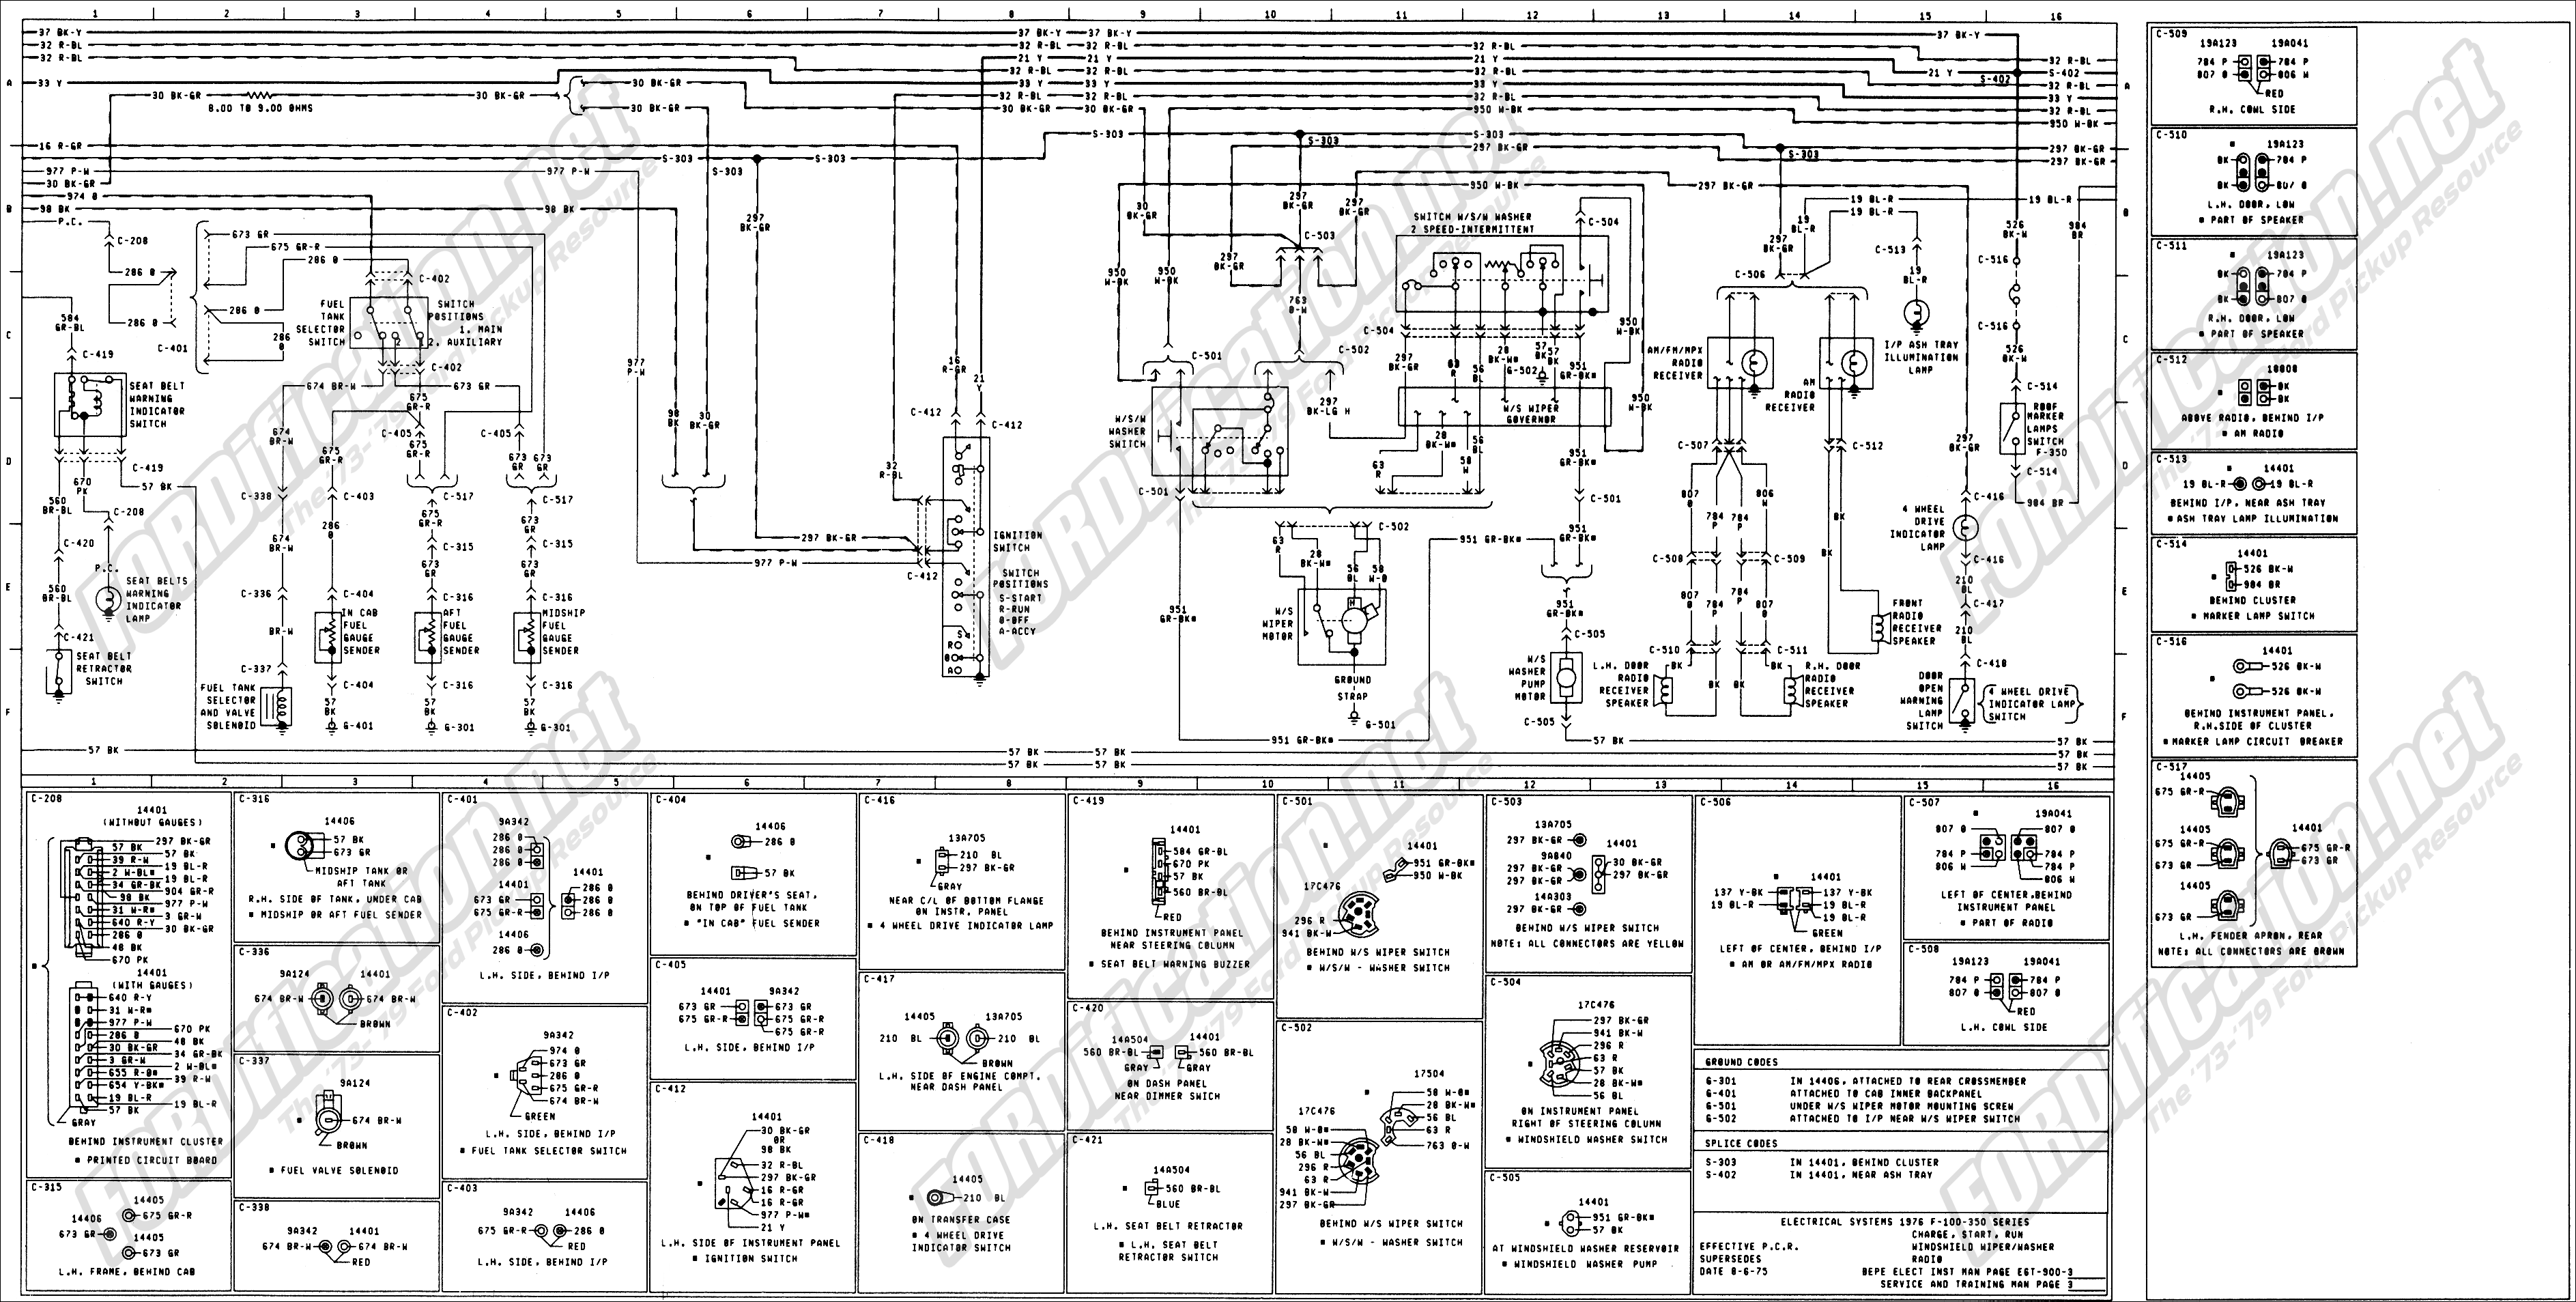 2003 Ford E150 Washer Diagram Wiring Schematic Content Resource Of 2010 E 450 Fuse Box 1973 1979 Truck Diagrams Schematics Fordification Net Rh 1999 F 150 350